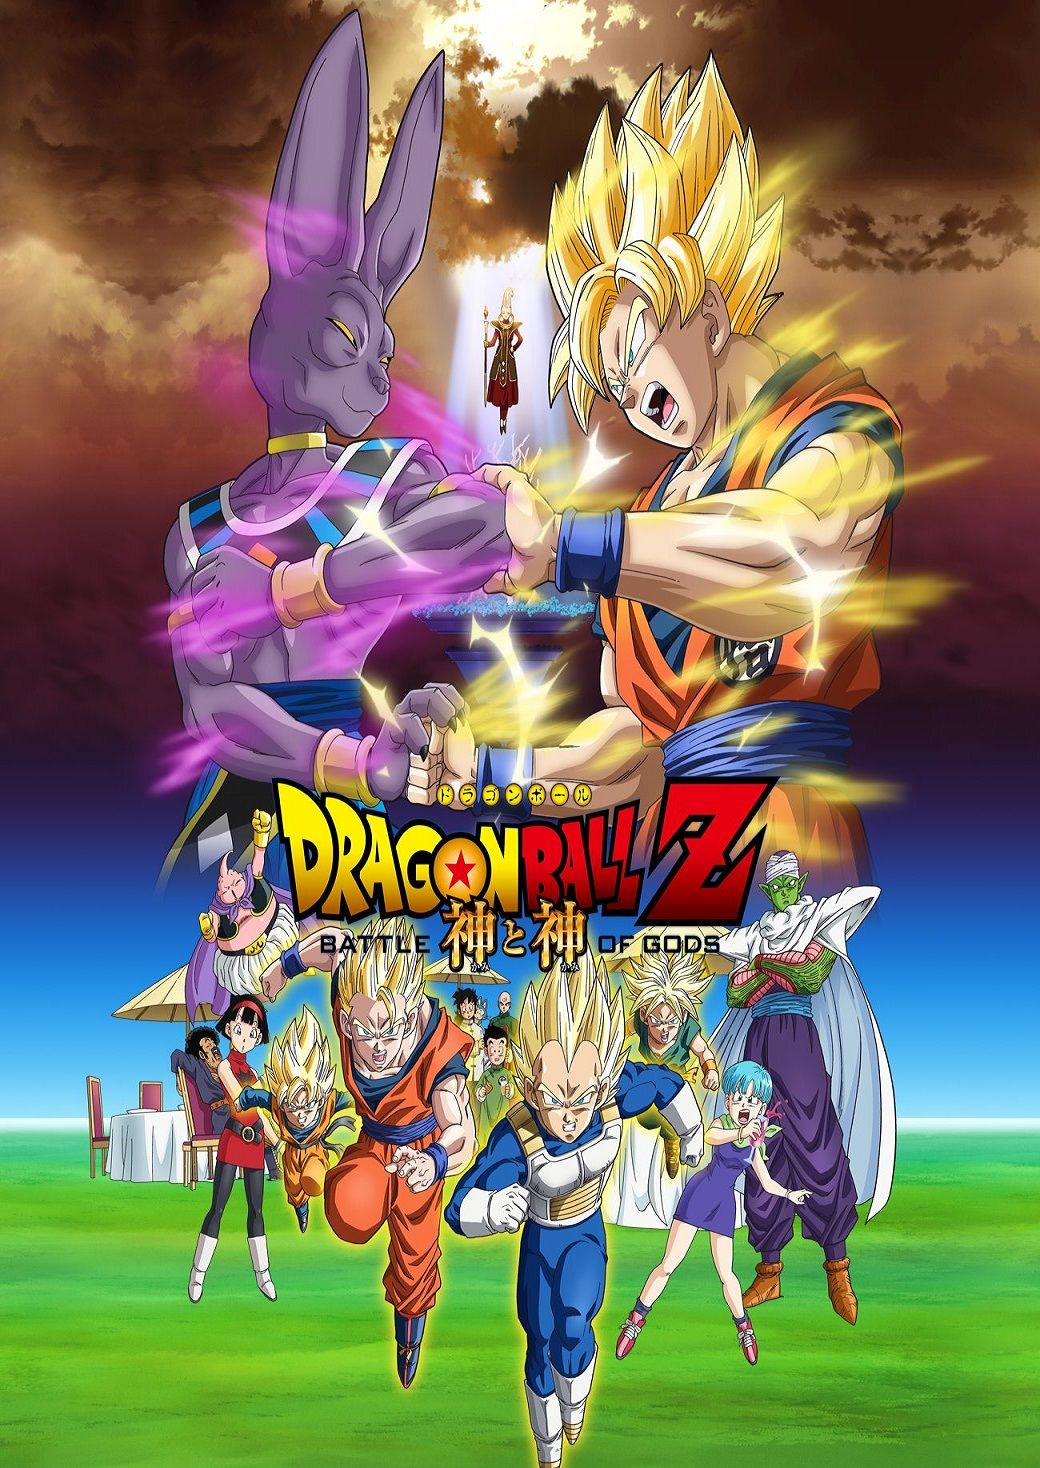 Dragon Ball Z Battle of Gods - 2013 BDRip x264 AAC - T�rk�e Altyaz�l� Tek Link indir